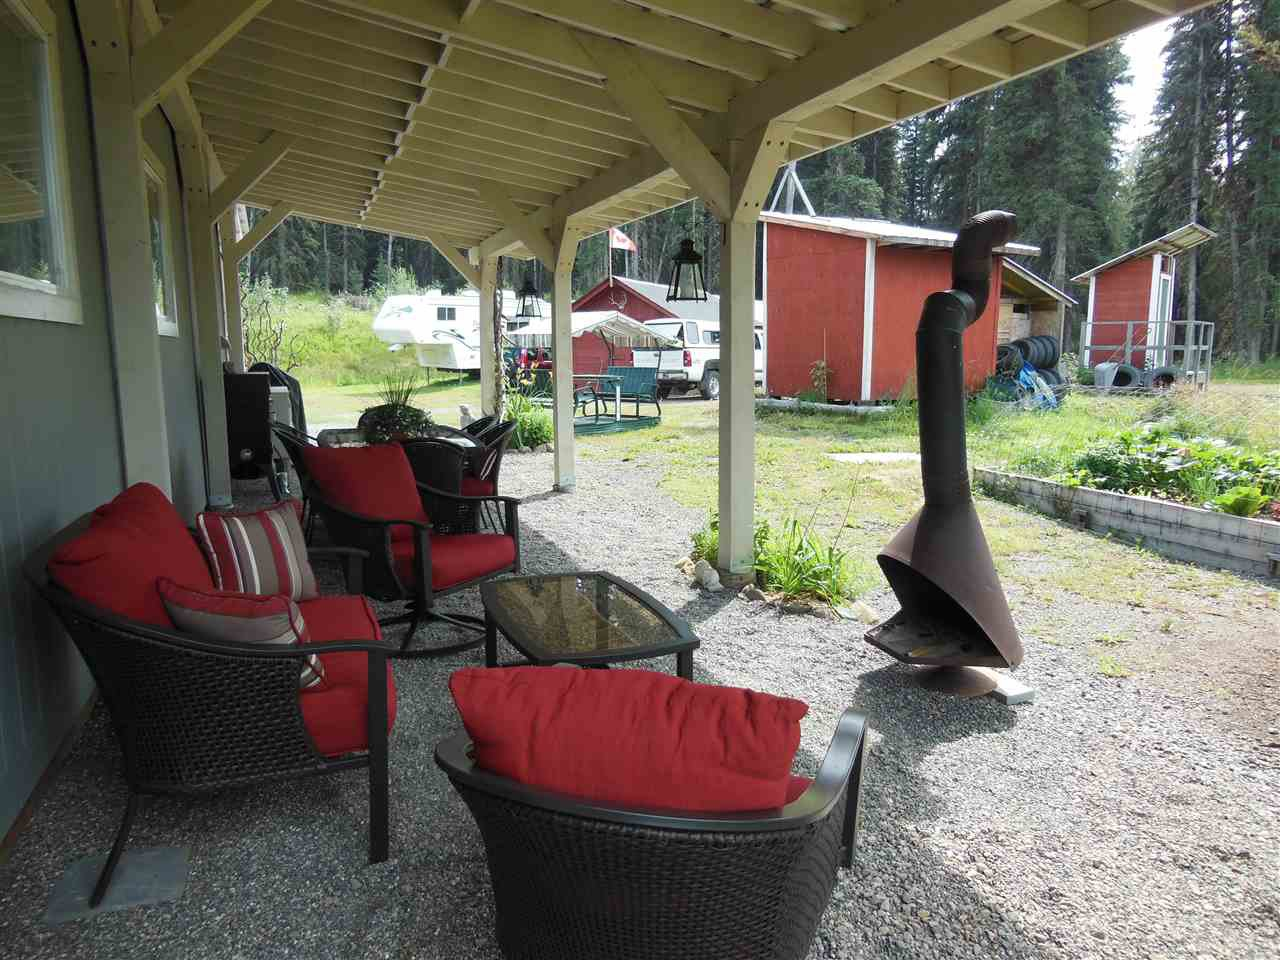 Photo 17: Photos: 3535 WESTWICK PIT Road: 150 Mile House House for sale (Williams Lake (Zone 27))  : MLS®# R2488772